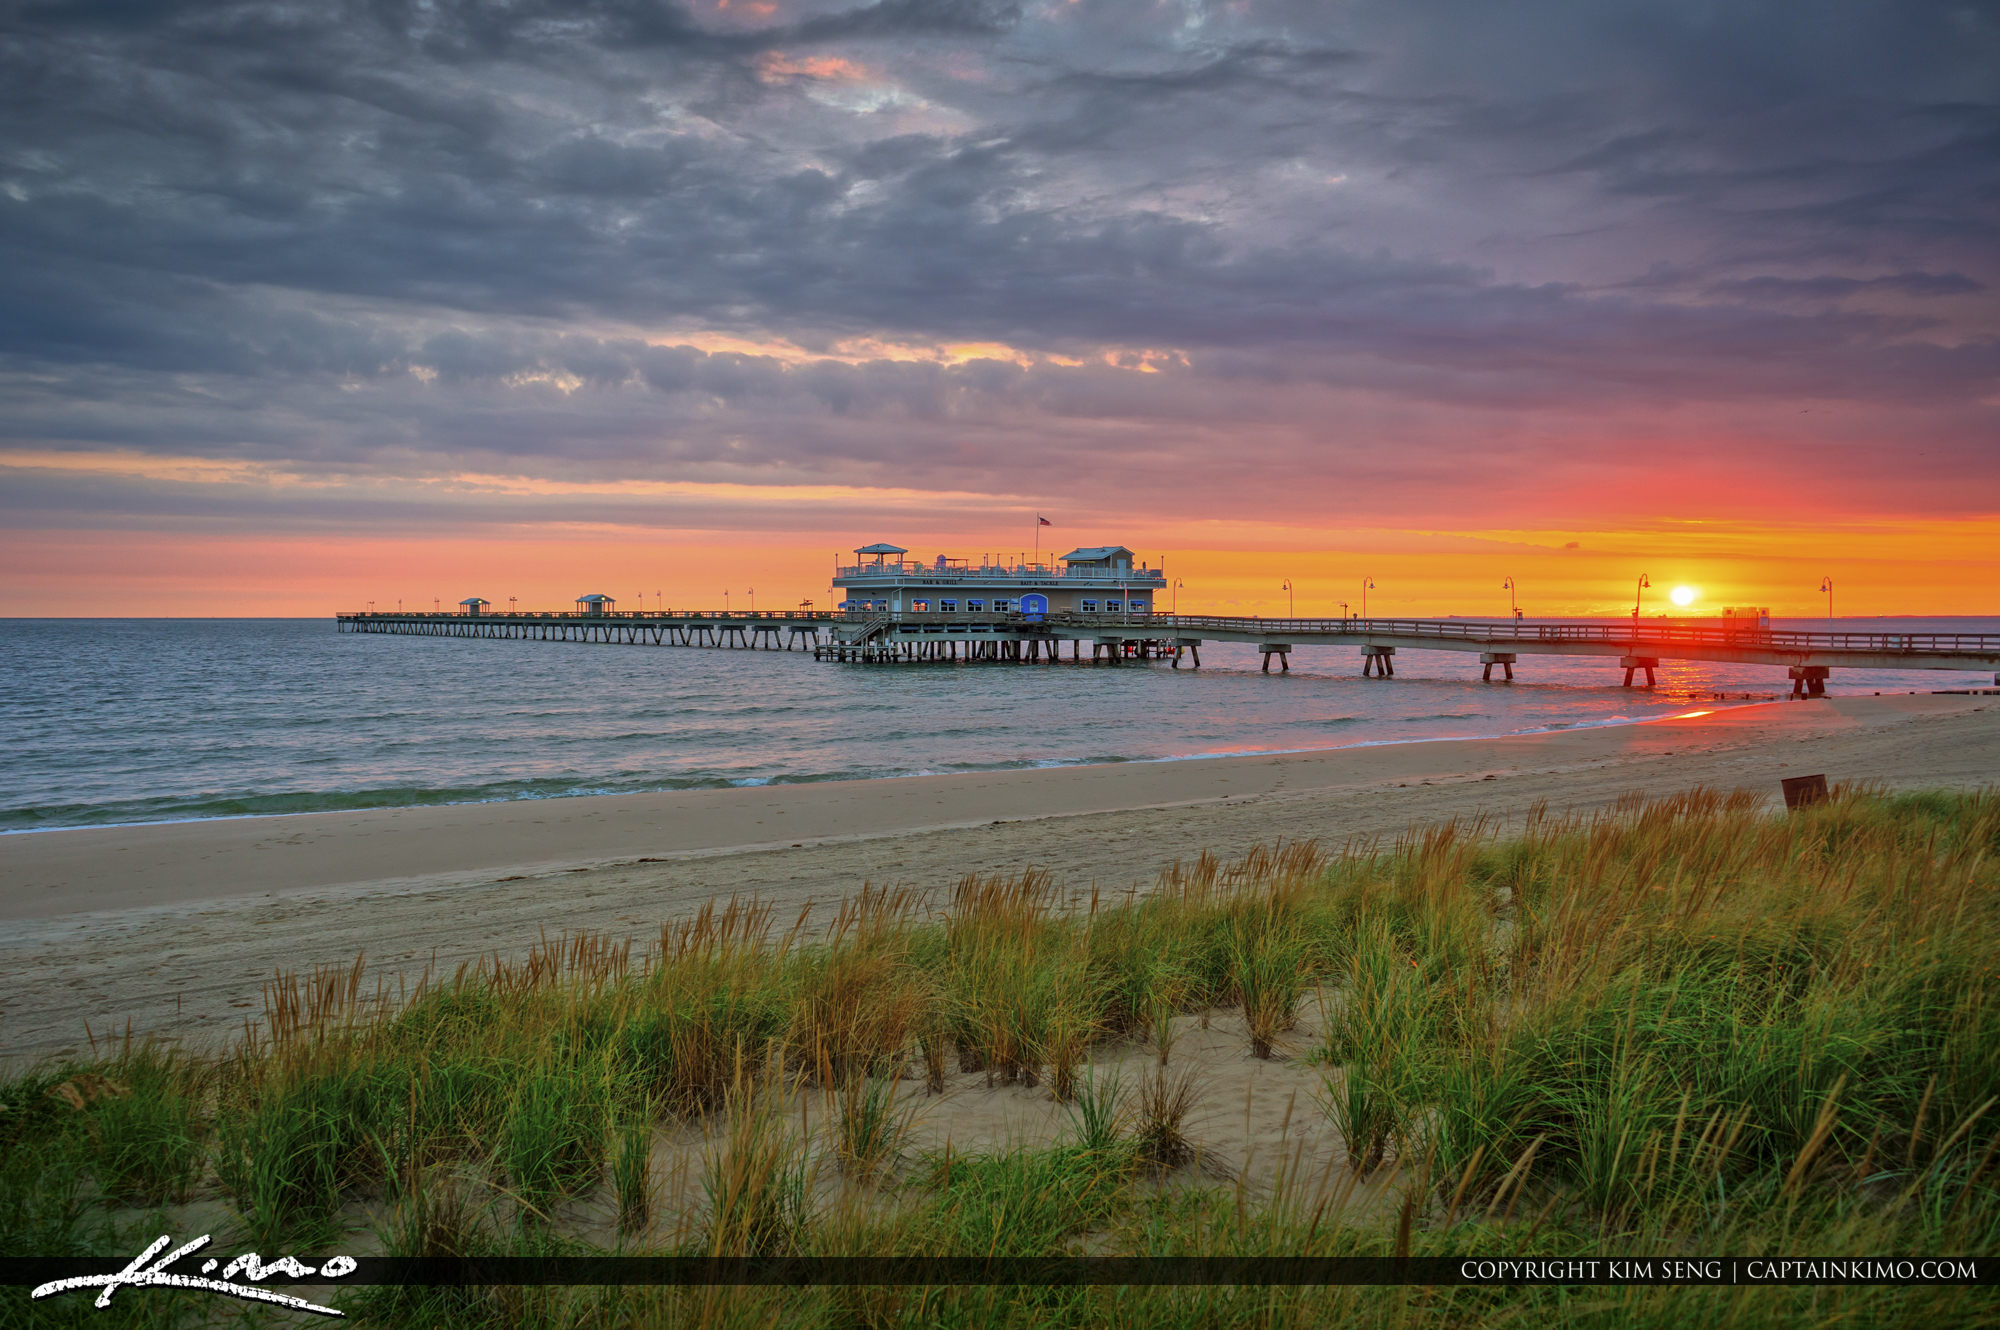 Sunrise along the Pier in Virgina Beach